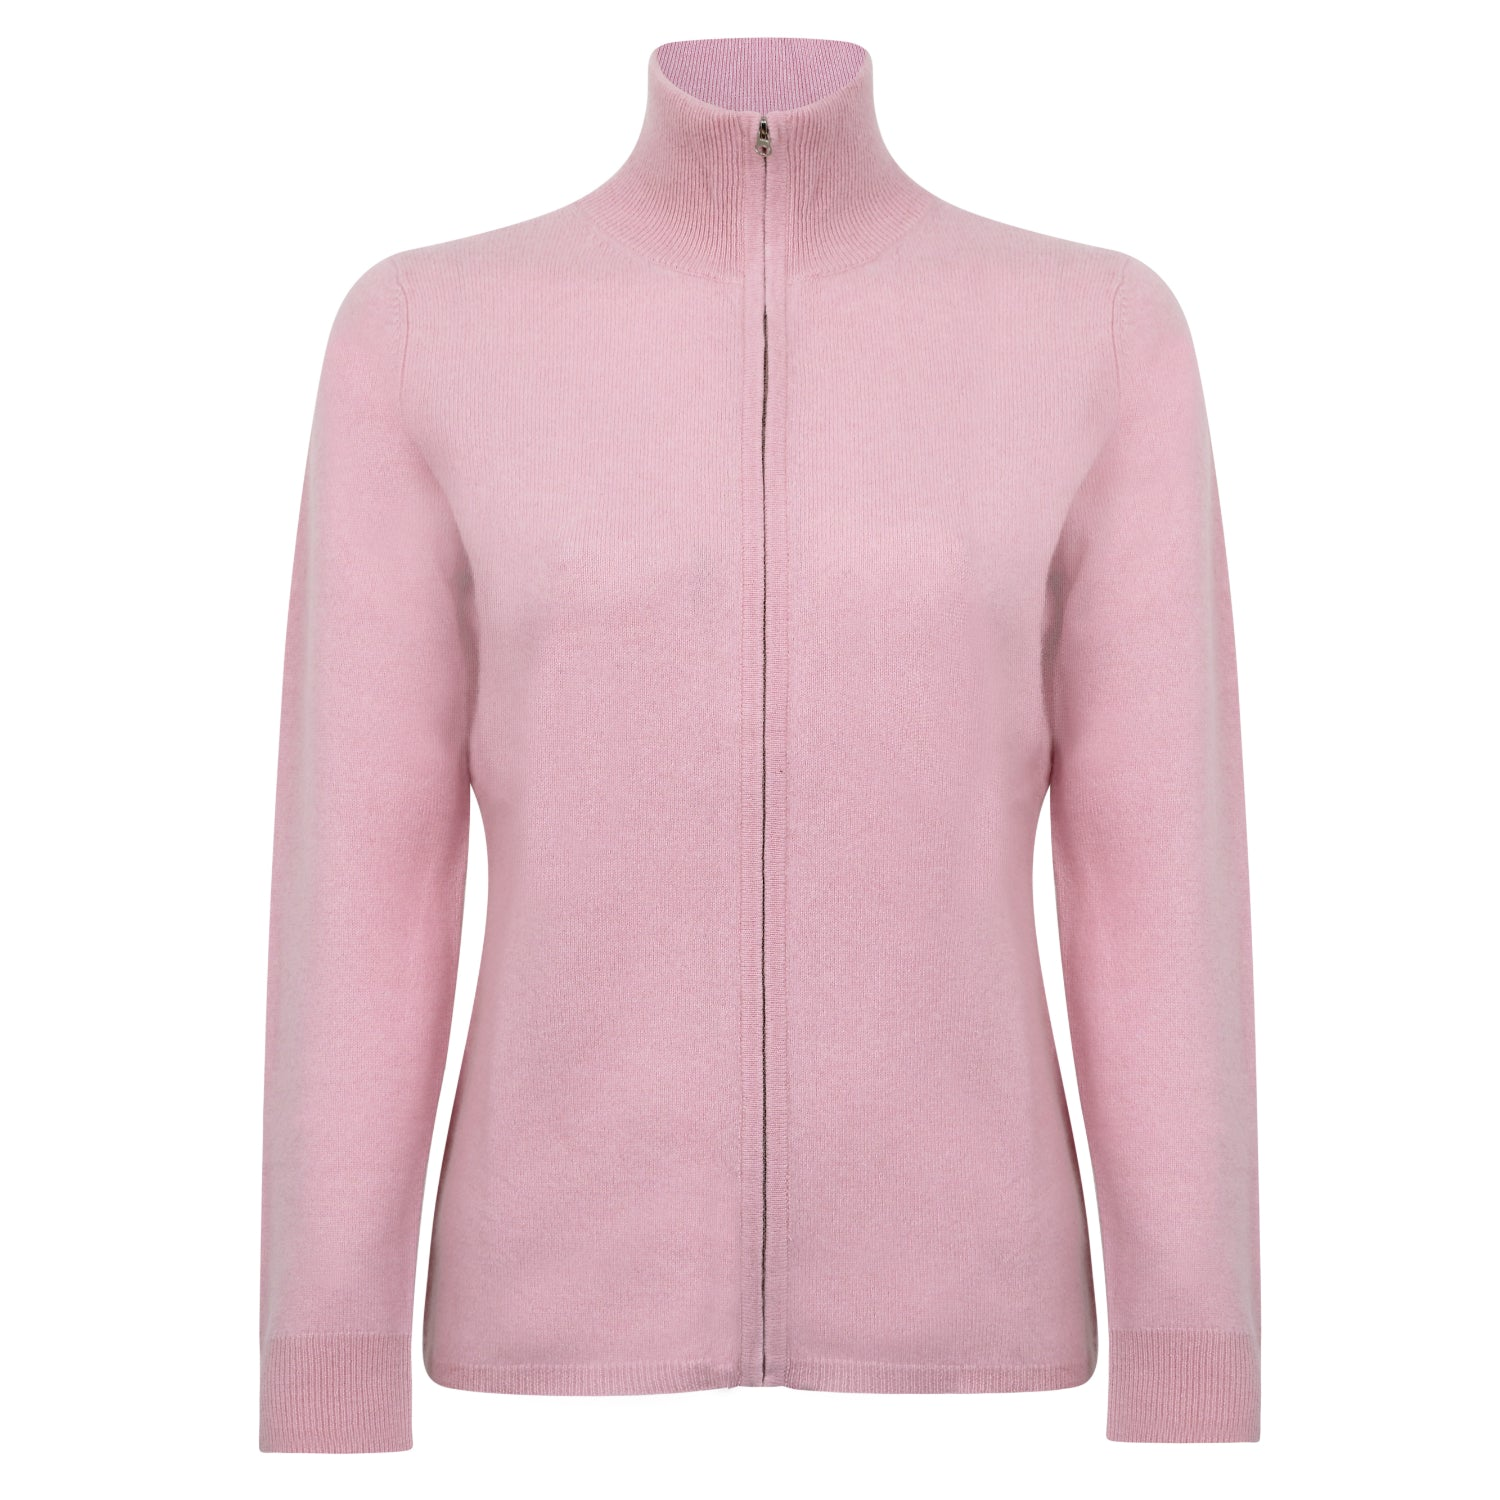 Lomond Cashmere | Ladies 2-Ply Cashmere Zip Cardigan | Powder Pink | Shop now at The Cashmere Choice | London